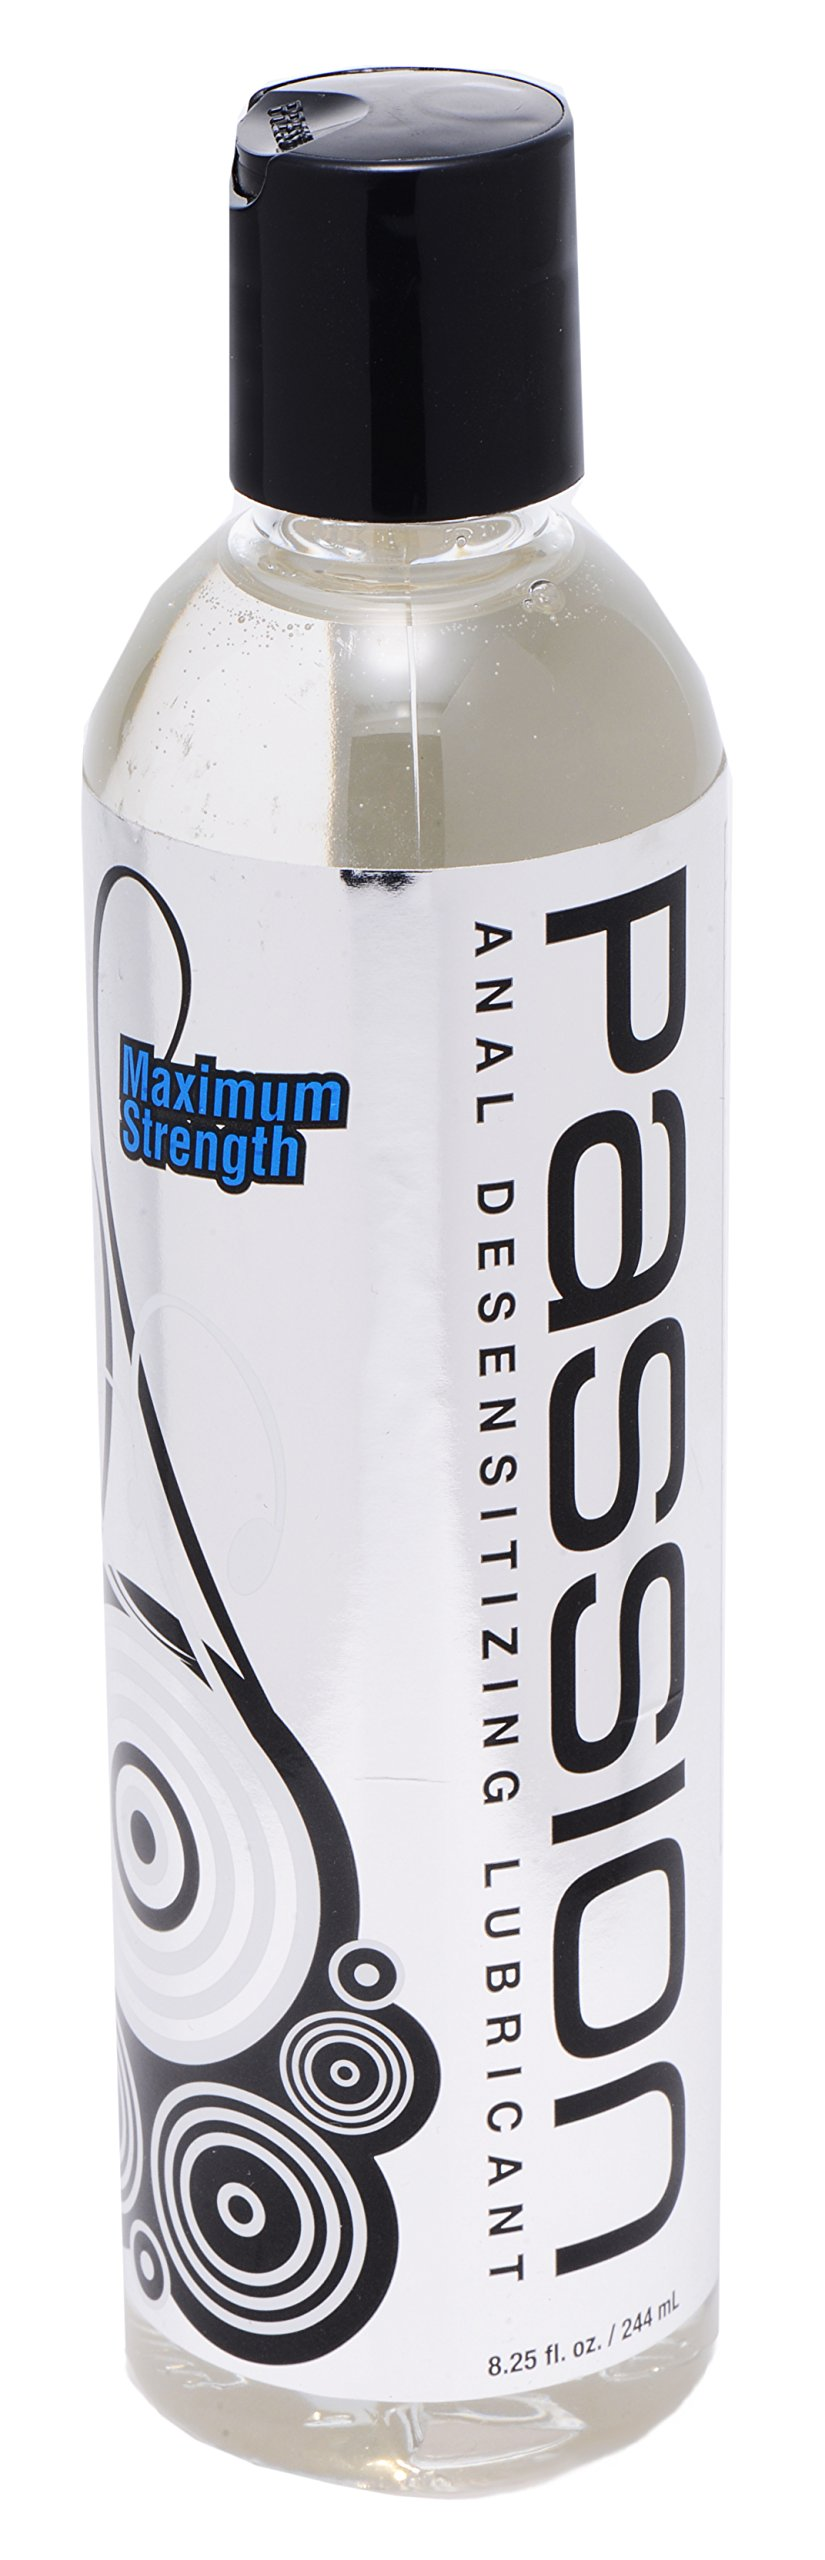 Passion Lubes Maximum Strength Anal Desensitizing Lube, 8.25 fl oz by Passion Lubes